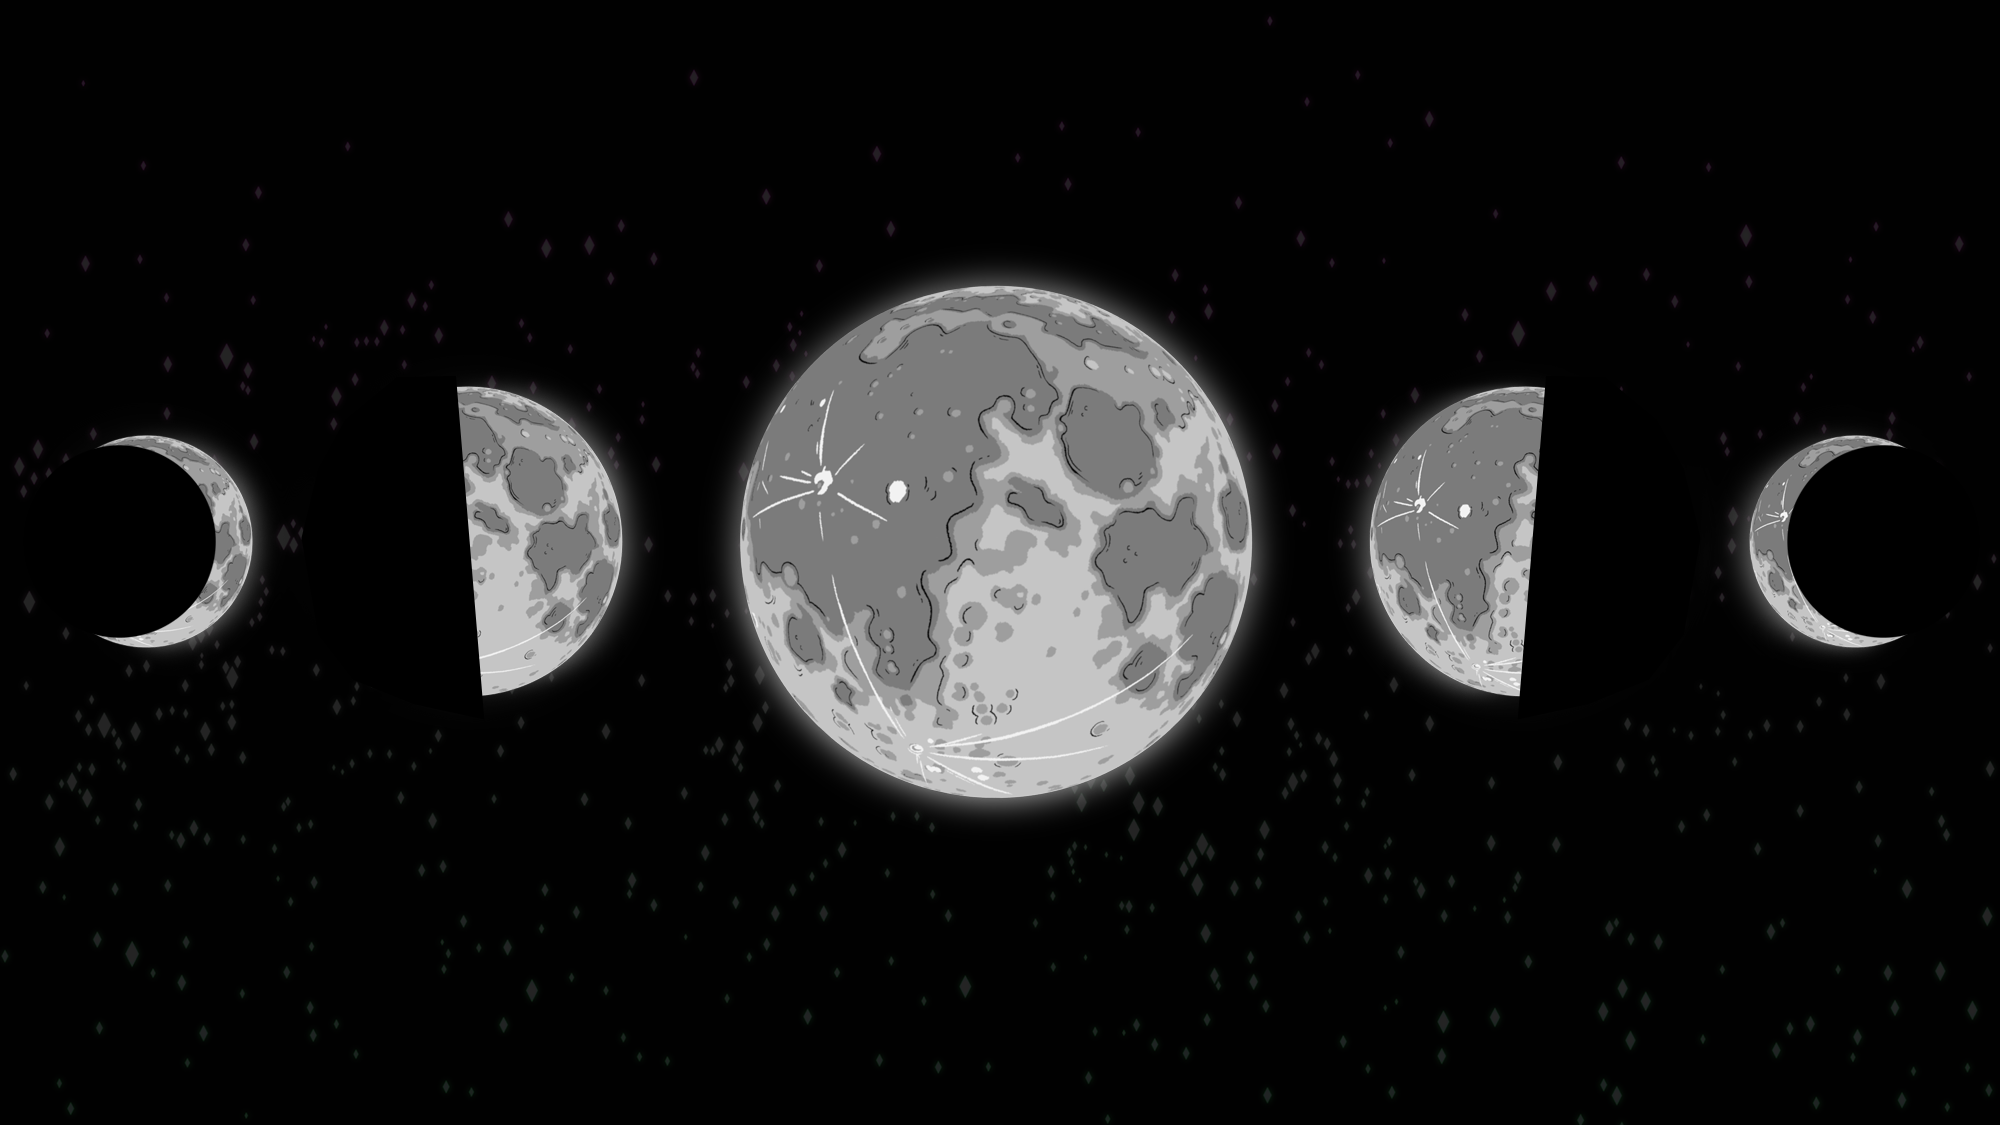 Moon Phases by Spectralbeacon on Newgrounds